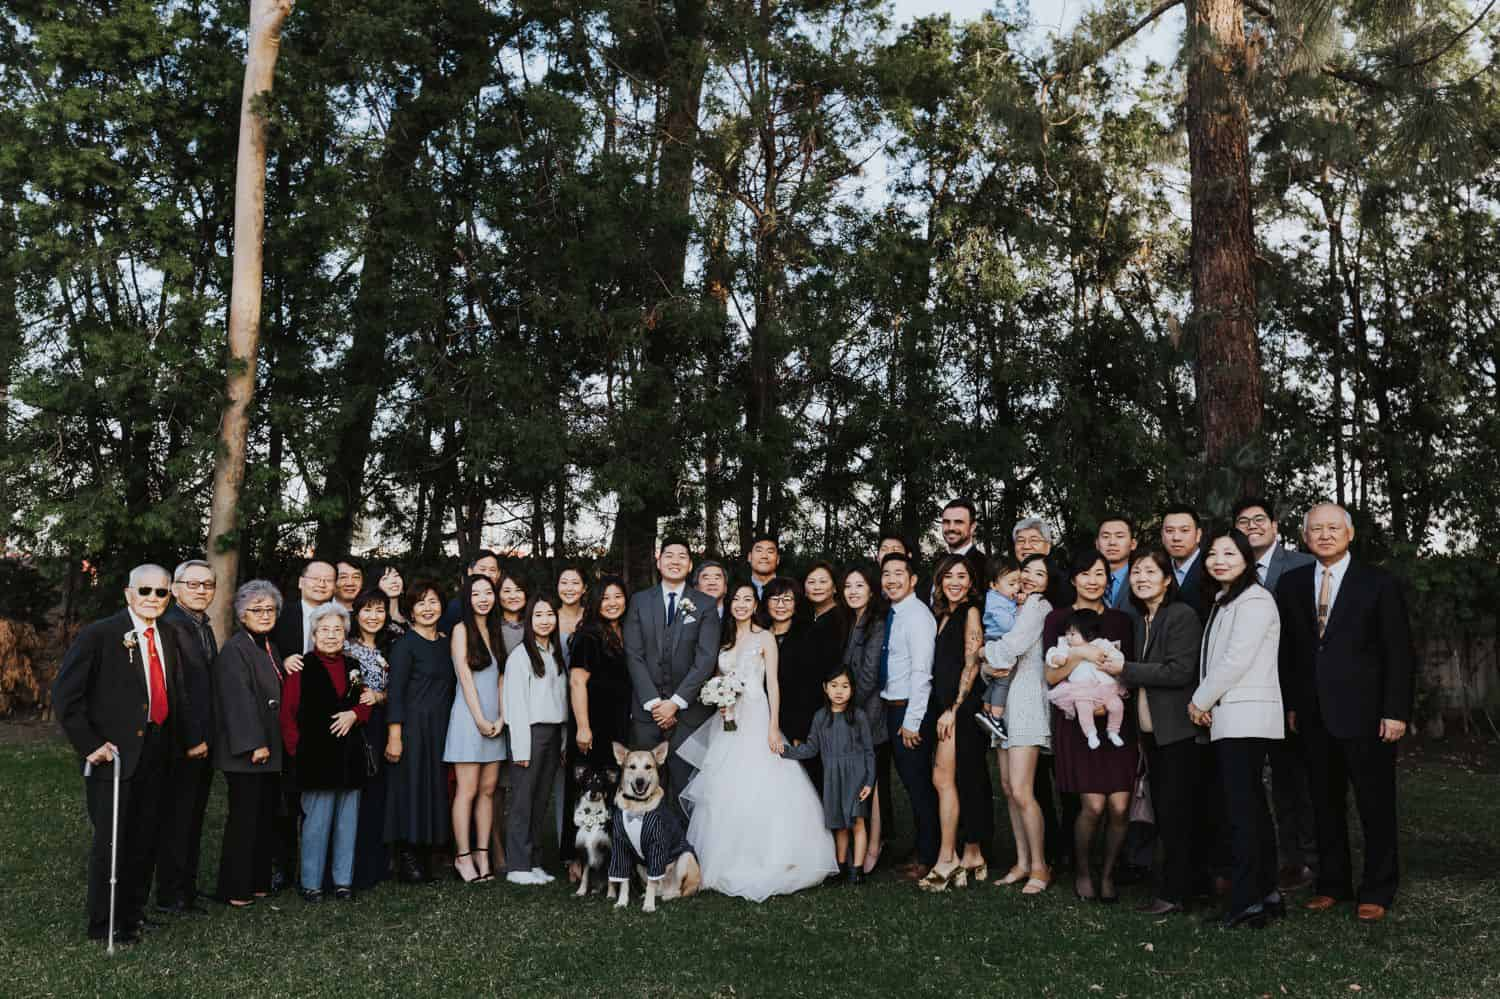 Huge family portrait in the forest during a wedding